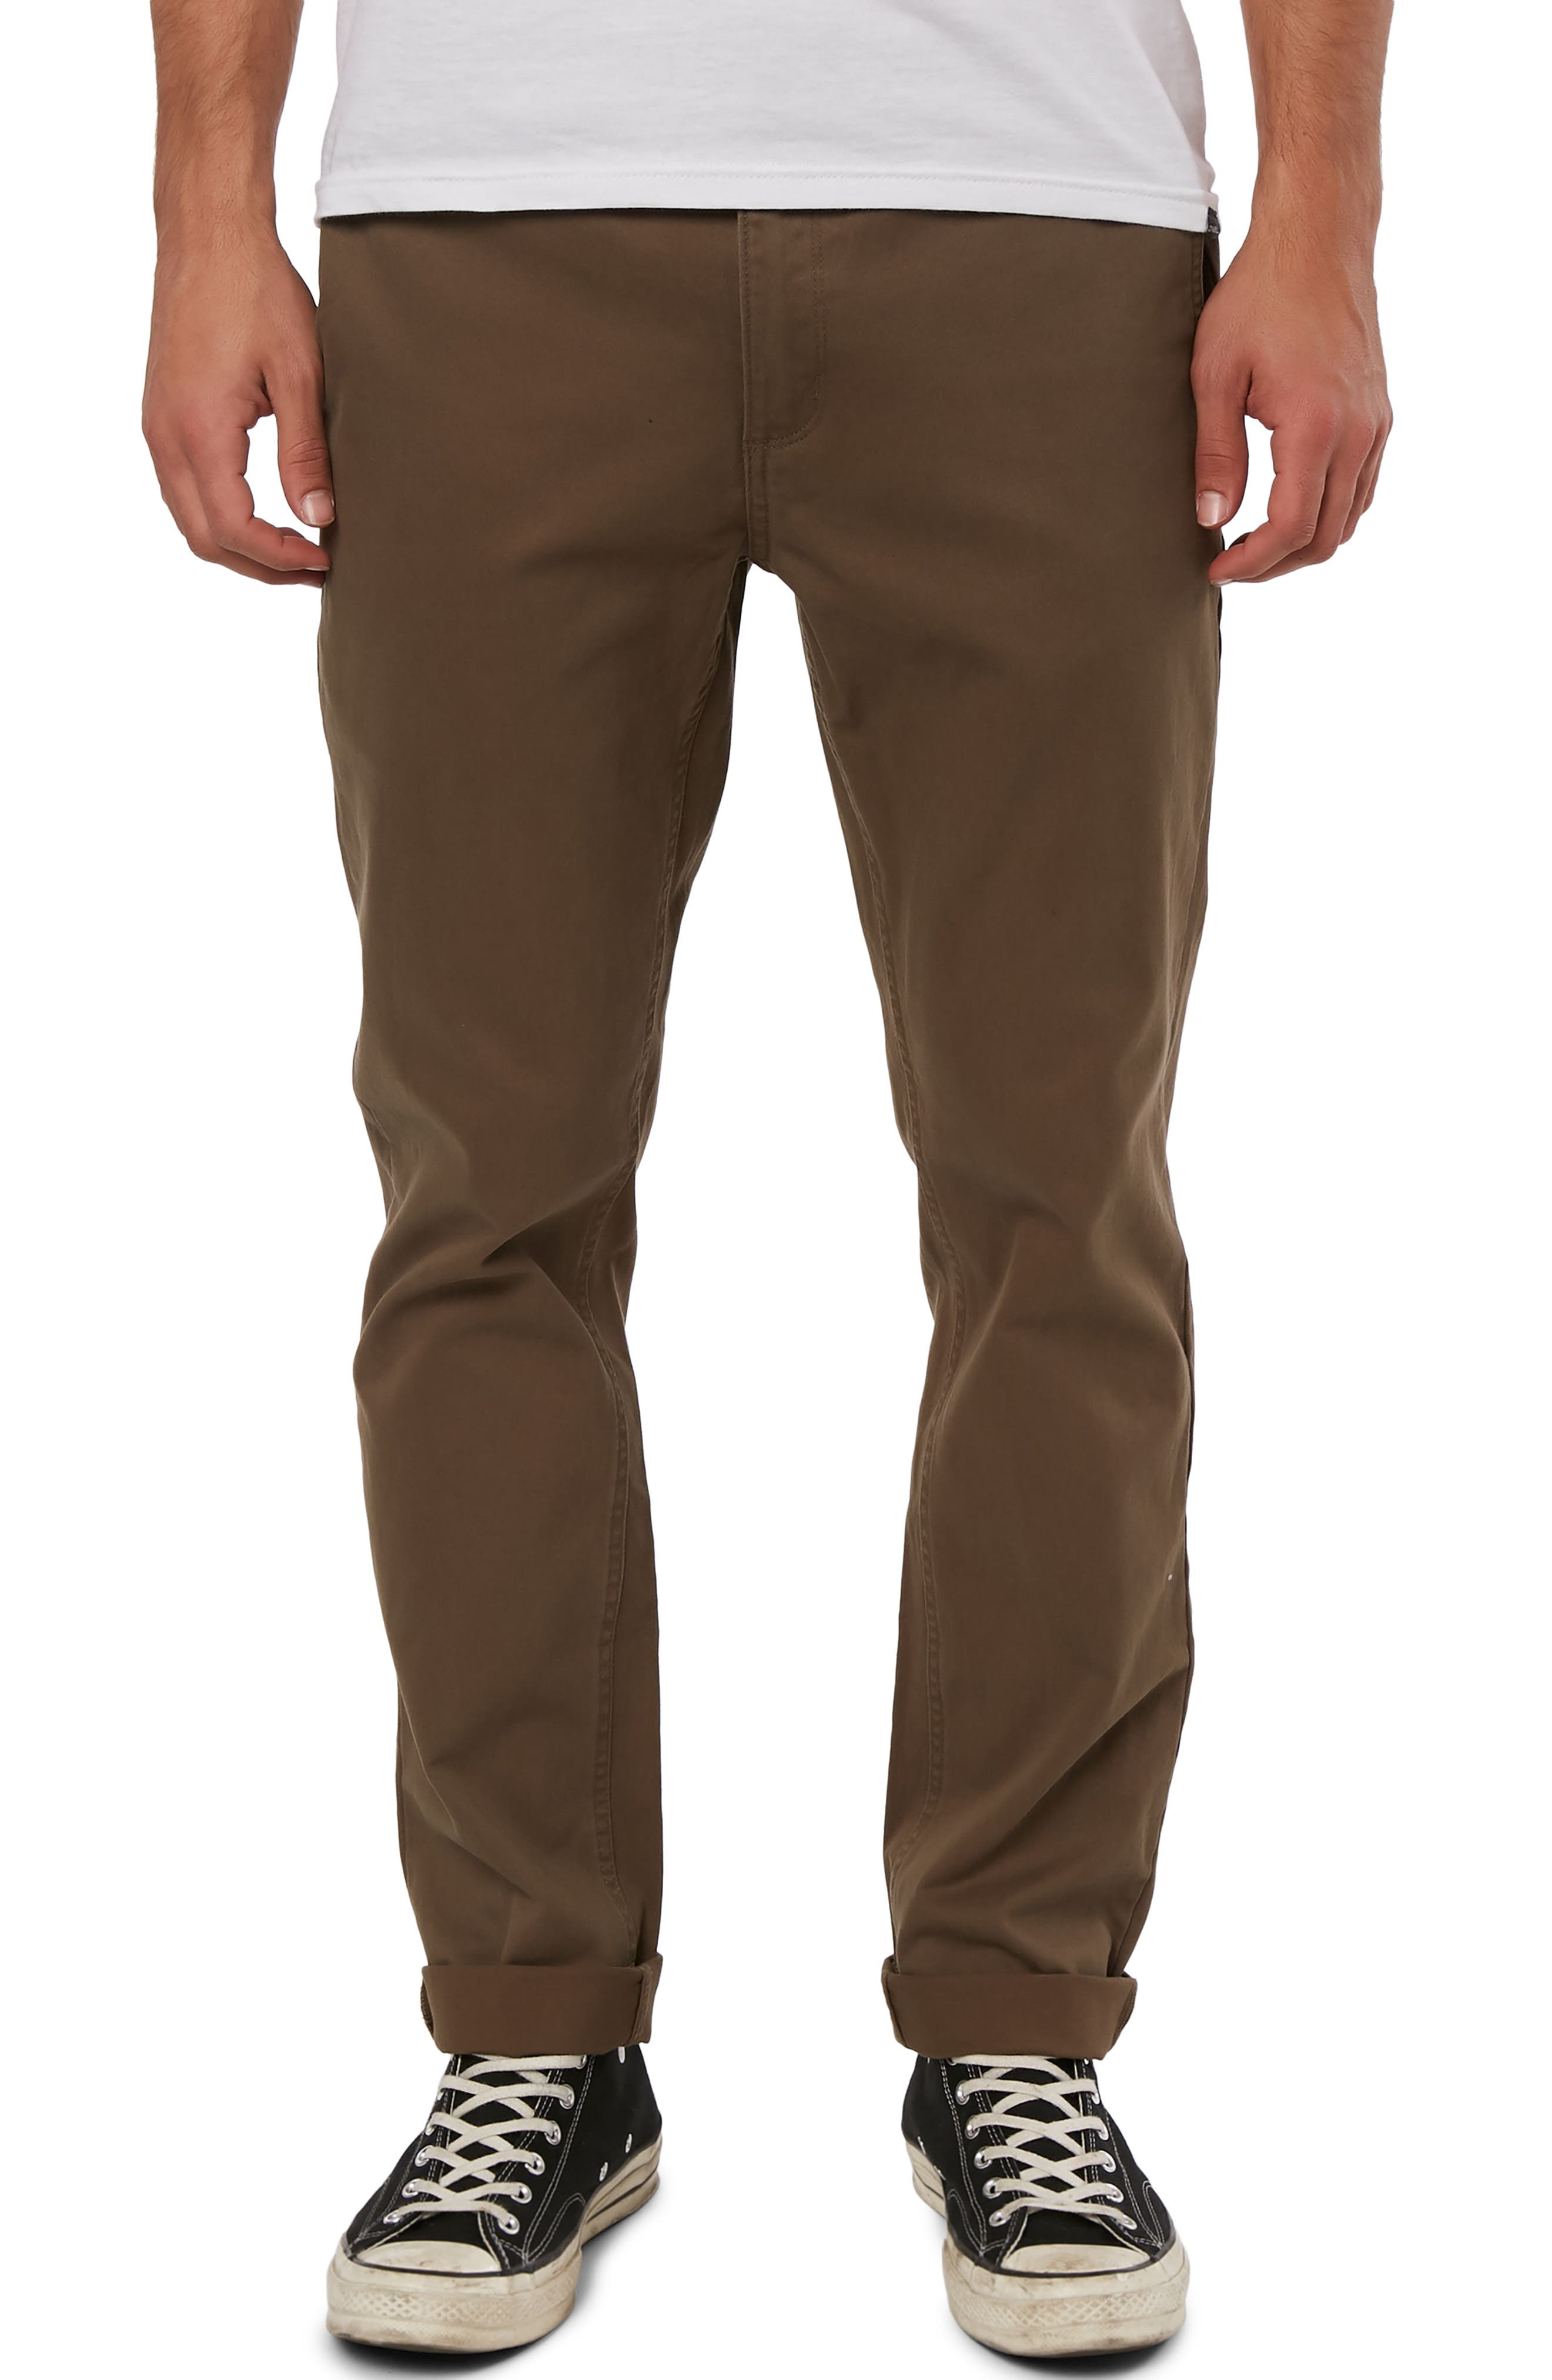 Mission Stretch Chino Pants,                             Main thumbnail 1, color,                             MILITARY GREEN